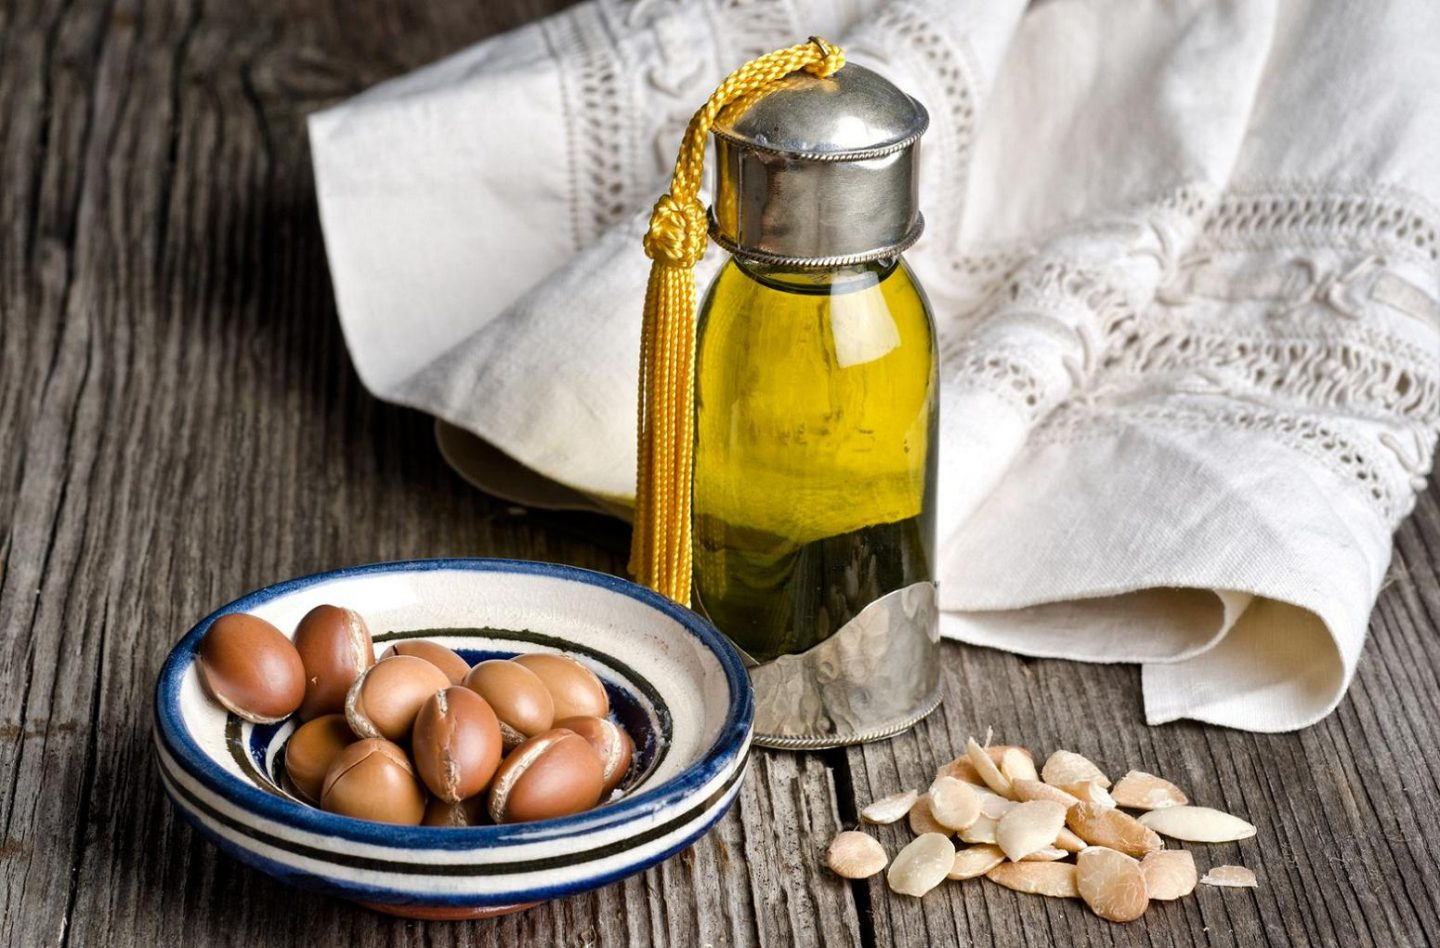 It is time for the top hair oil and skin oil as winter comes our way. We discuss the three best and how each one aids your hair and skin masterfully.